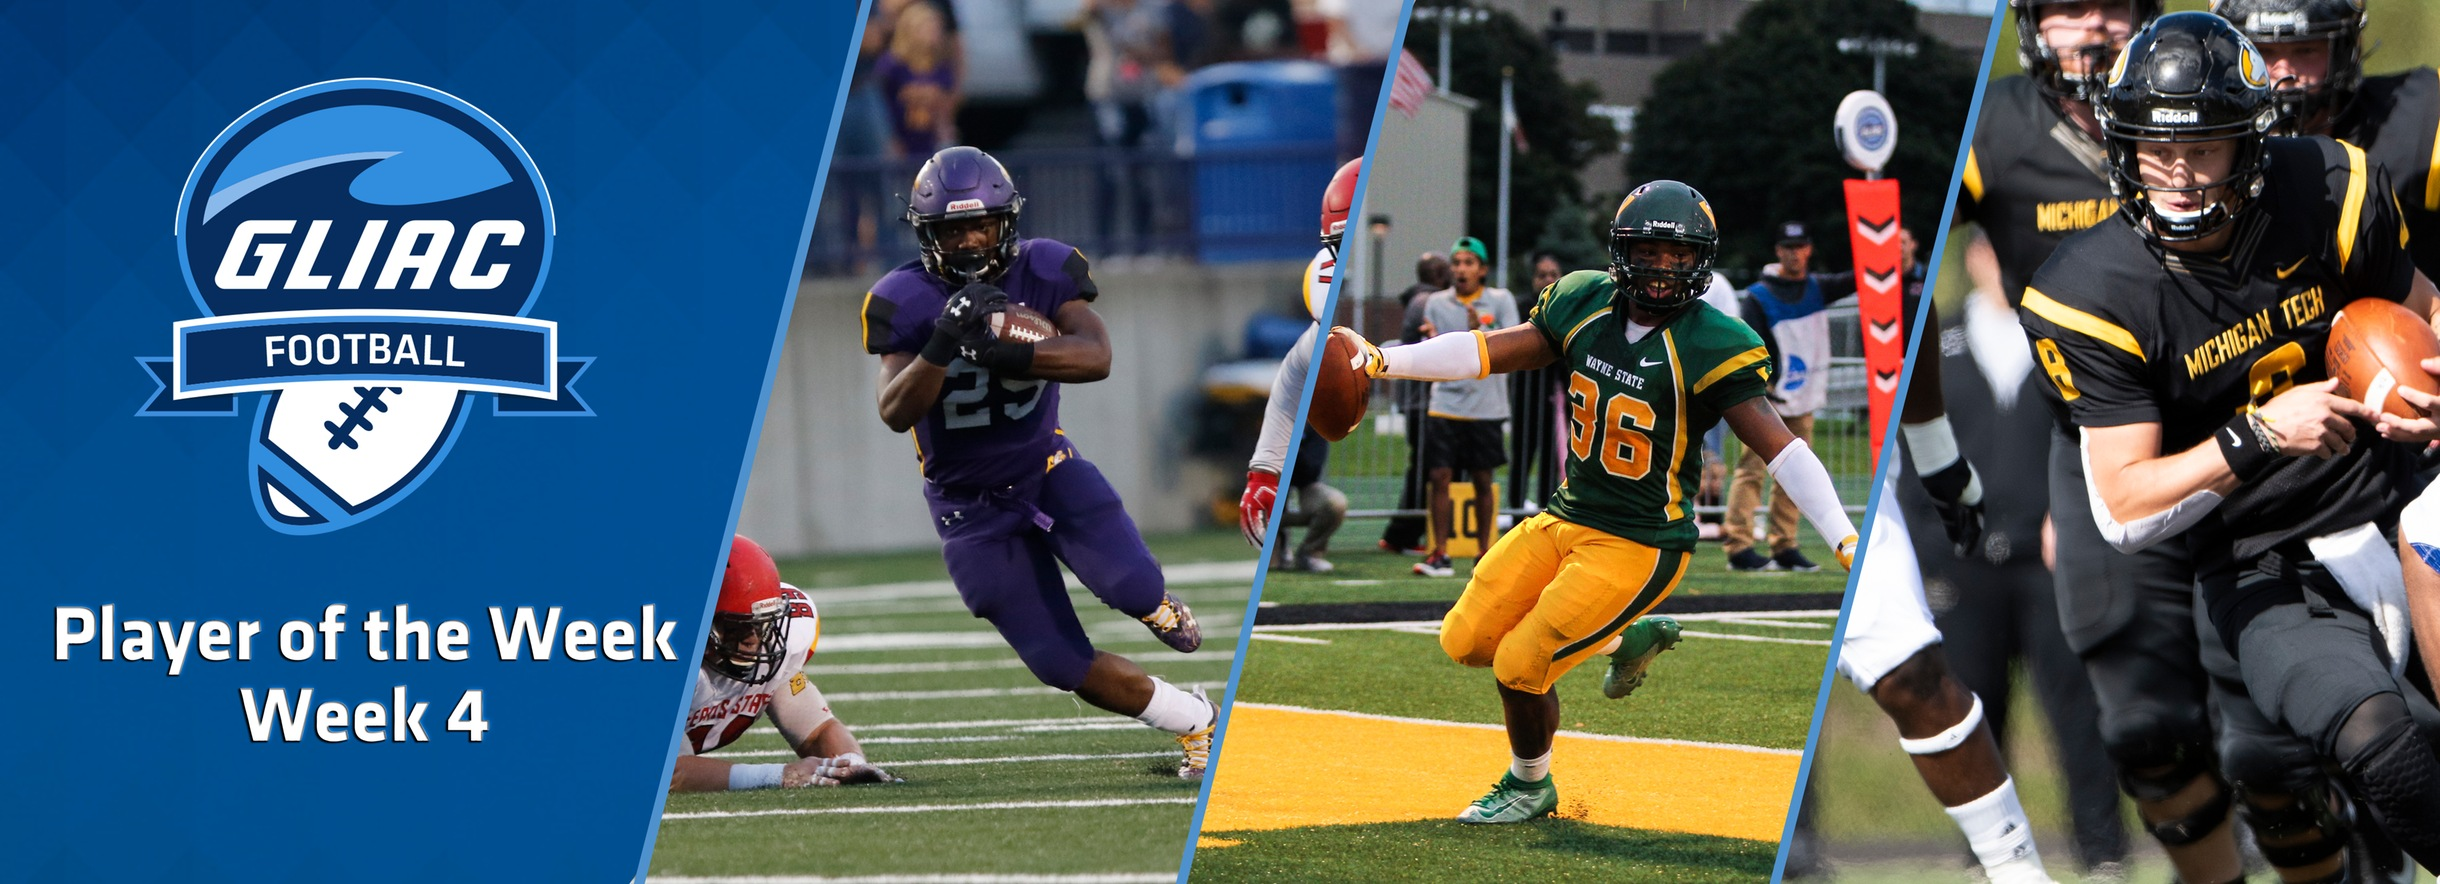 AU's Washington, WSU's Eggleston & MTU's Ark, Named GLIAC Football Players of the Week